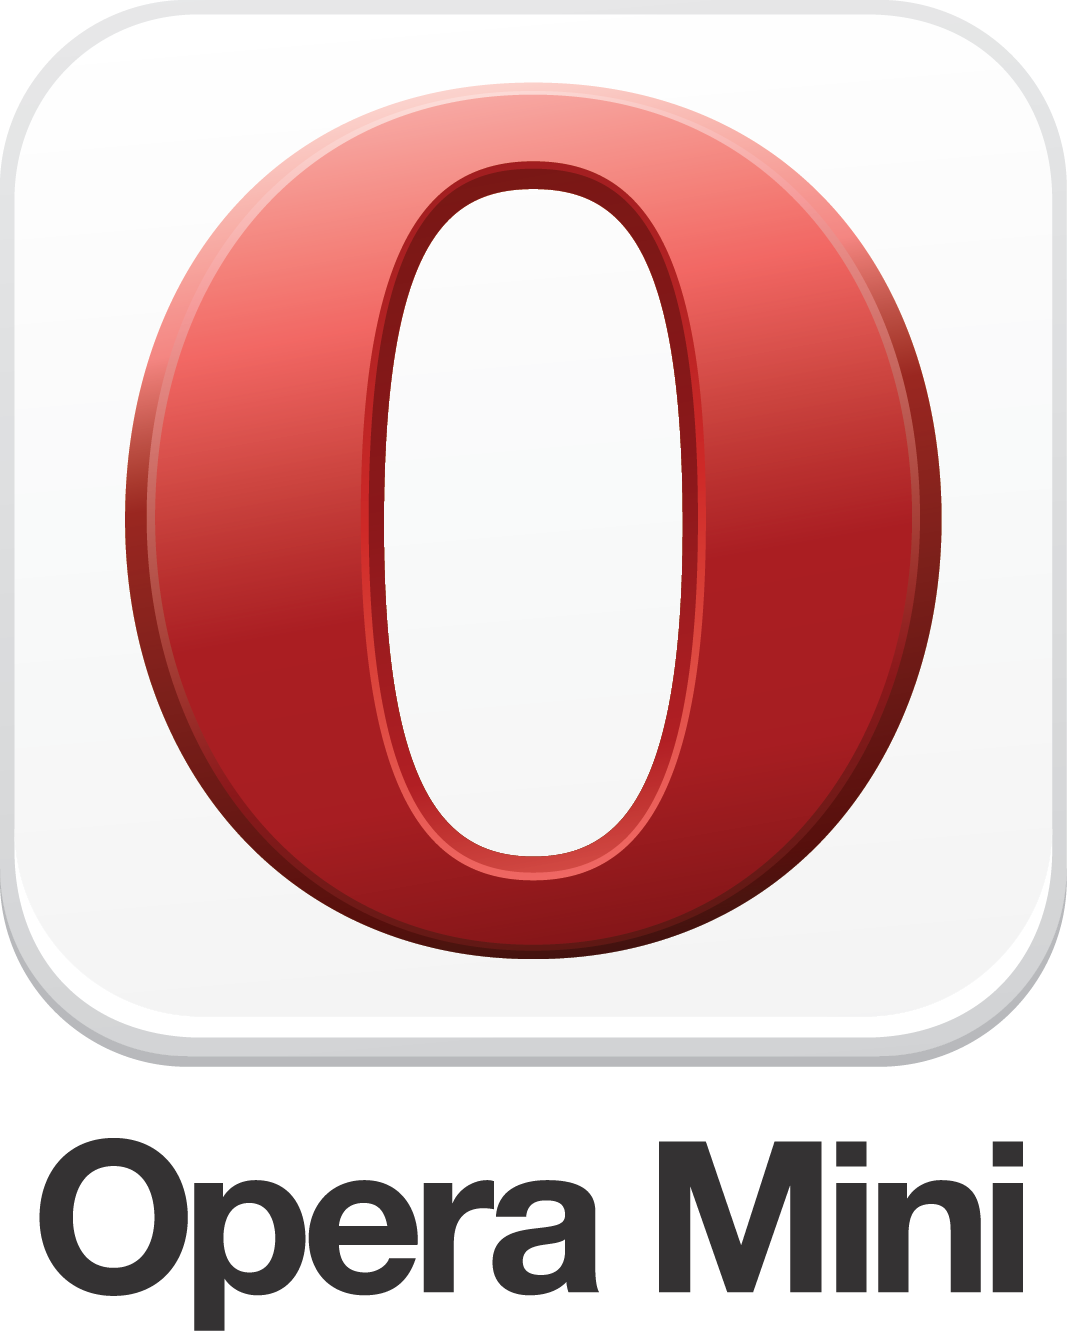 Sumedhe Dissanayake | Blog: Opera Mini .Jar Free Downloads